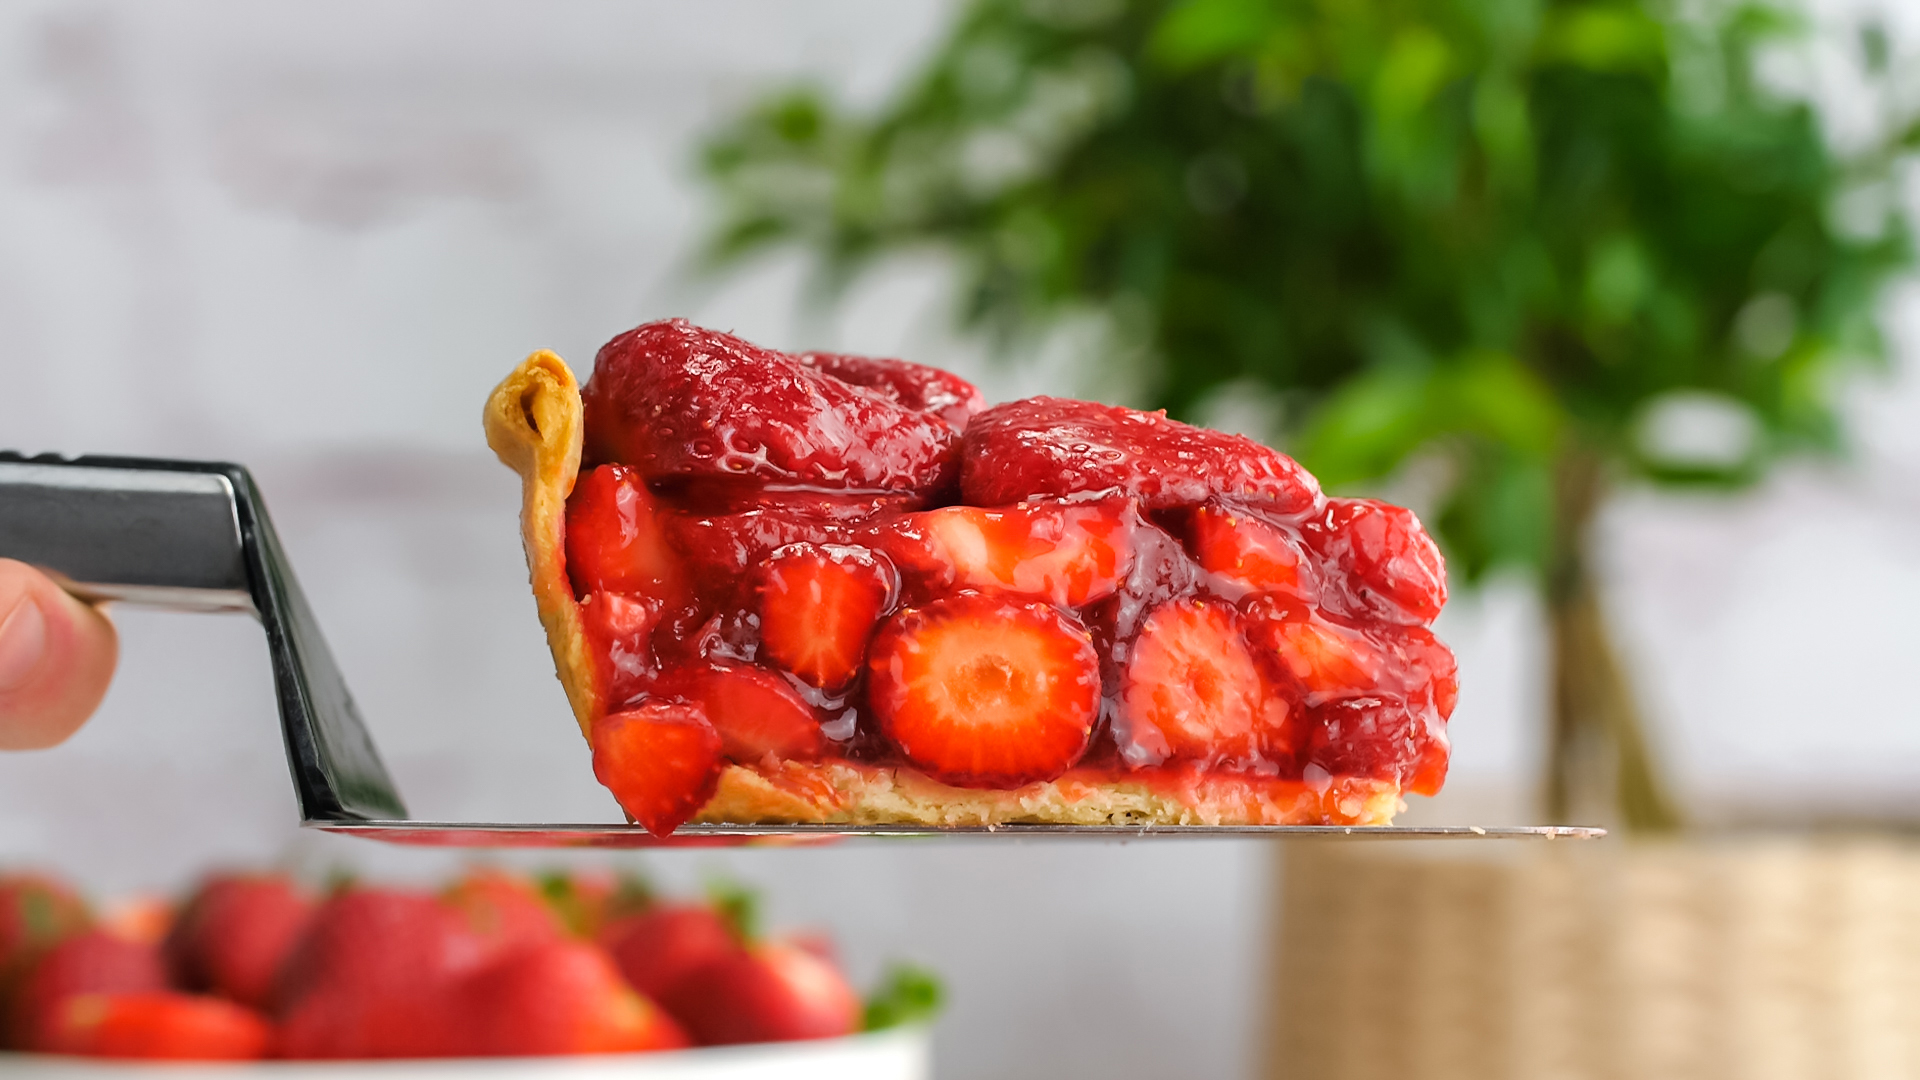 Strawberry Pie slice on a serving knife, side view of the fresh berries